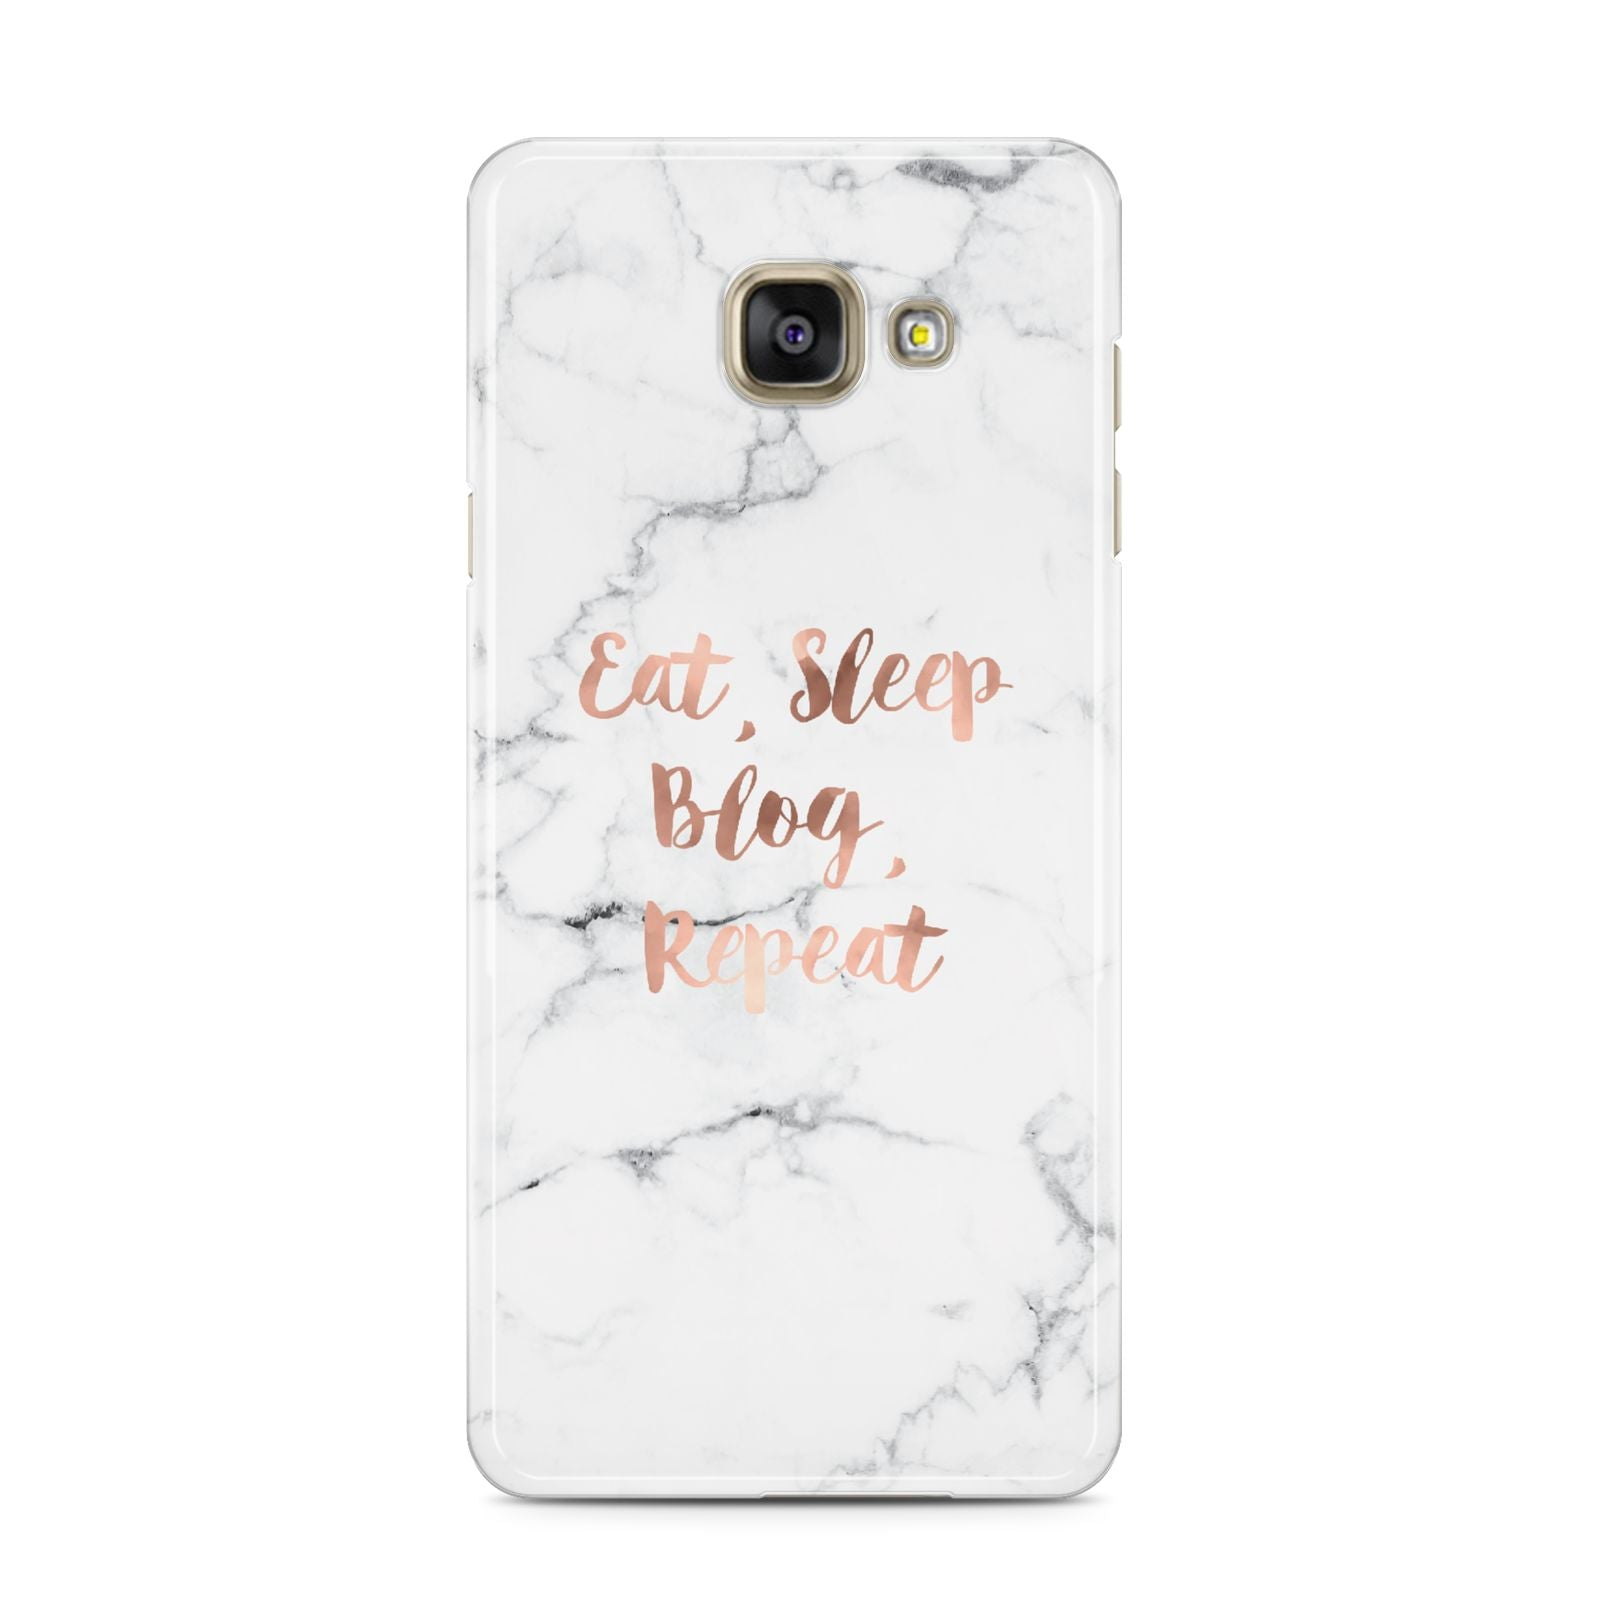 Eat Sleep Blog Repeat Marble Effect Samsung Galaxy A3 2016 Case on gold phone